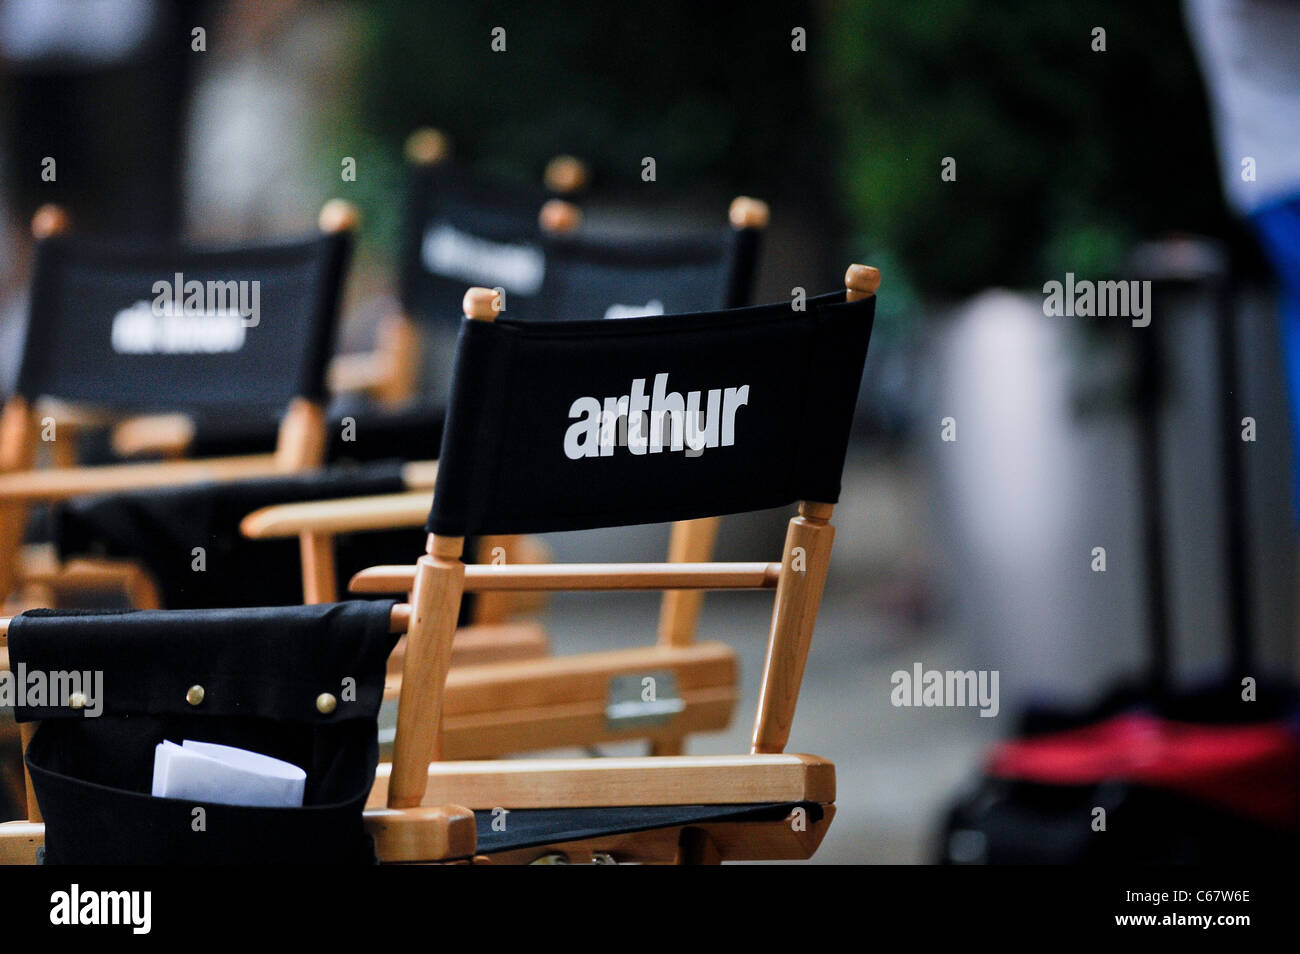 Atmosphere, at the 'Arthur' film set at the Bloomberg Tower out and about for CELEBRITY CANDIDS - THURSDAY, - Stock Image